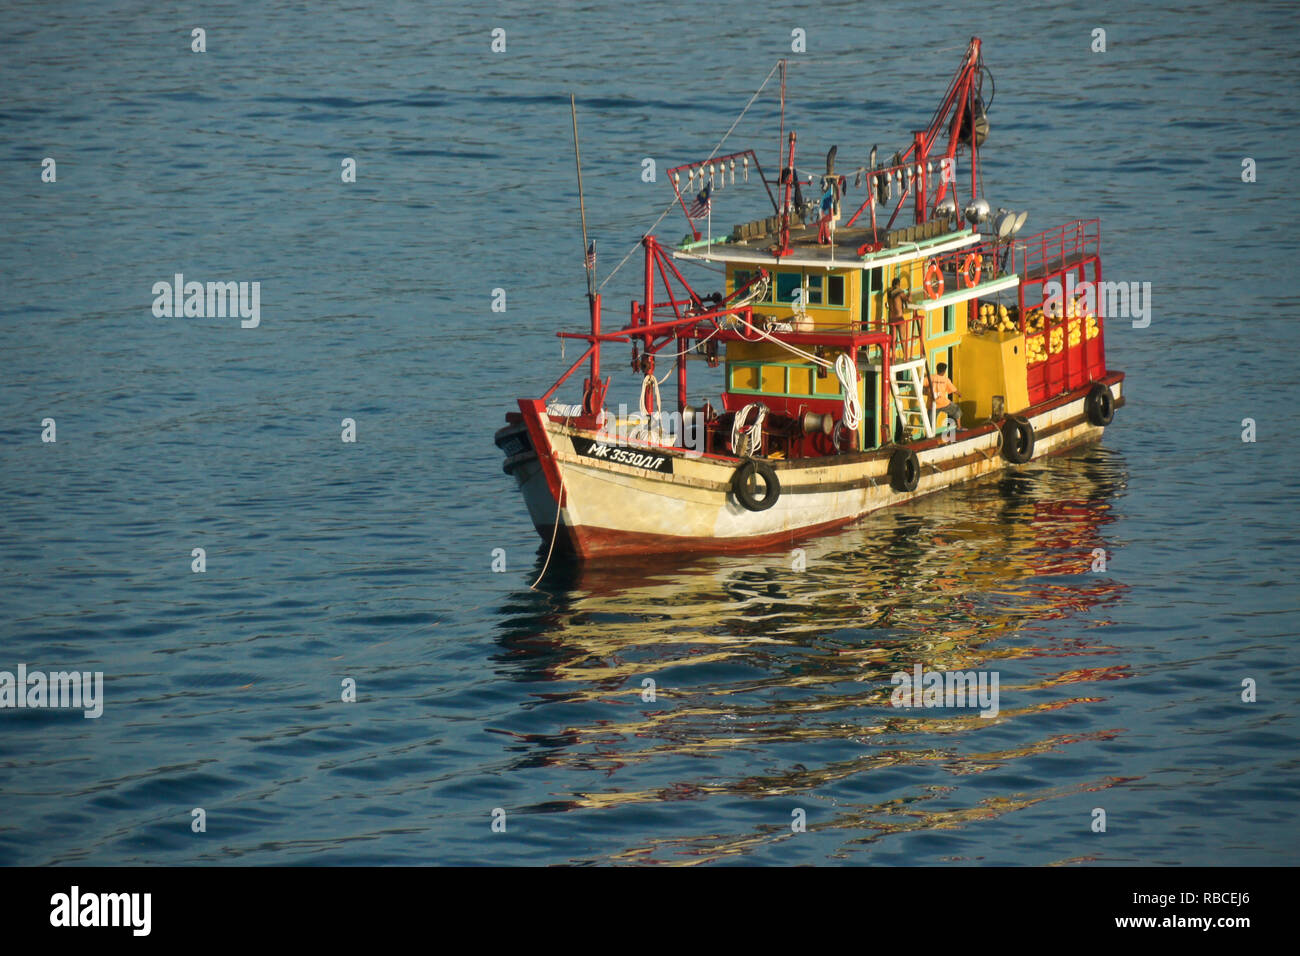 Colorful fishing boat anchored in South China Sea, Kota Kinabalu, Sabah (Borneo), Malaysia - Stock Image